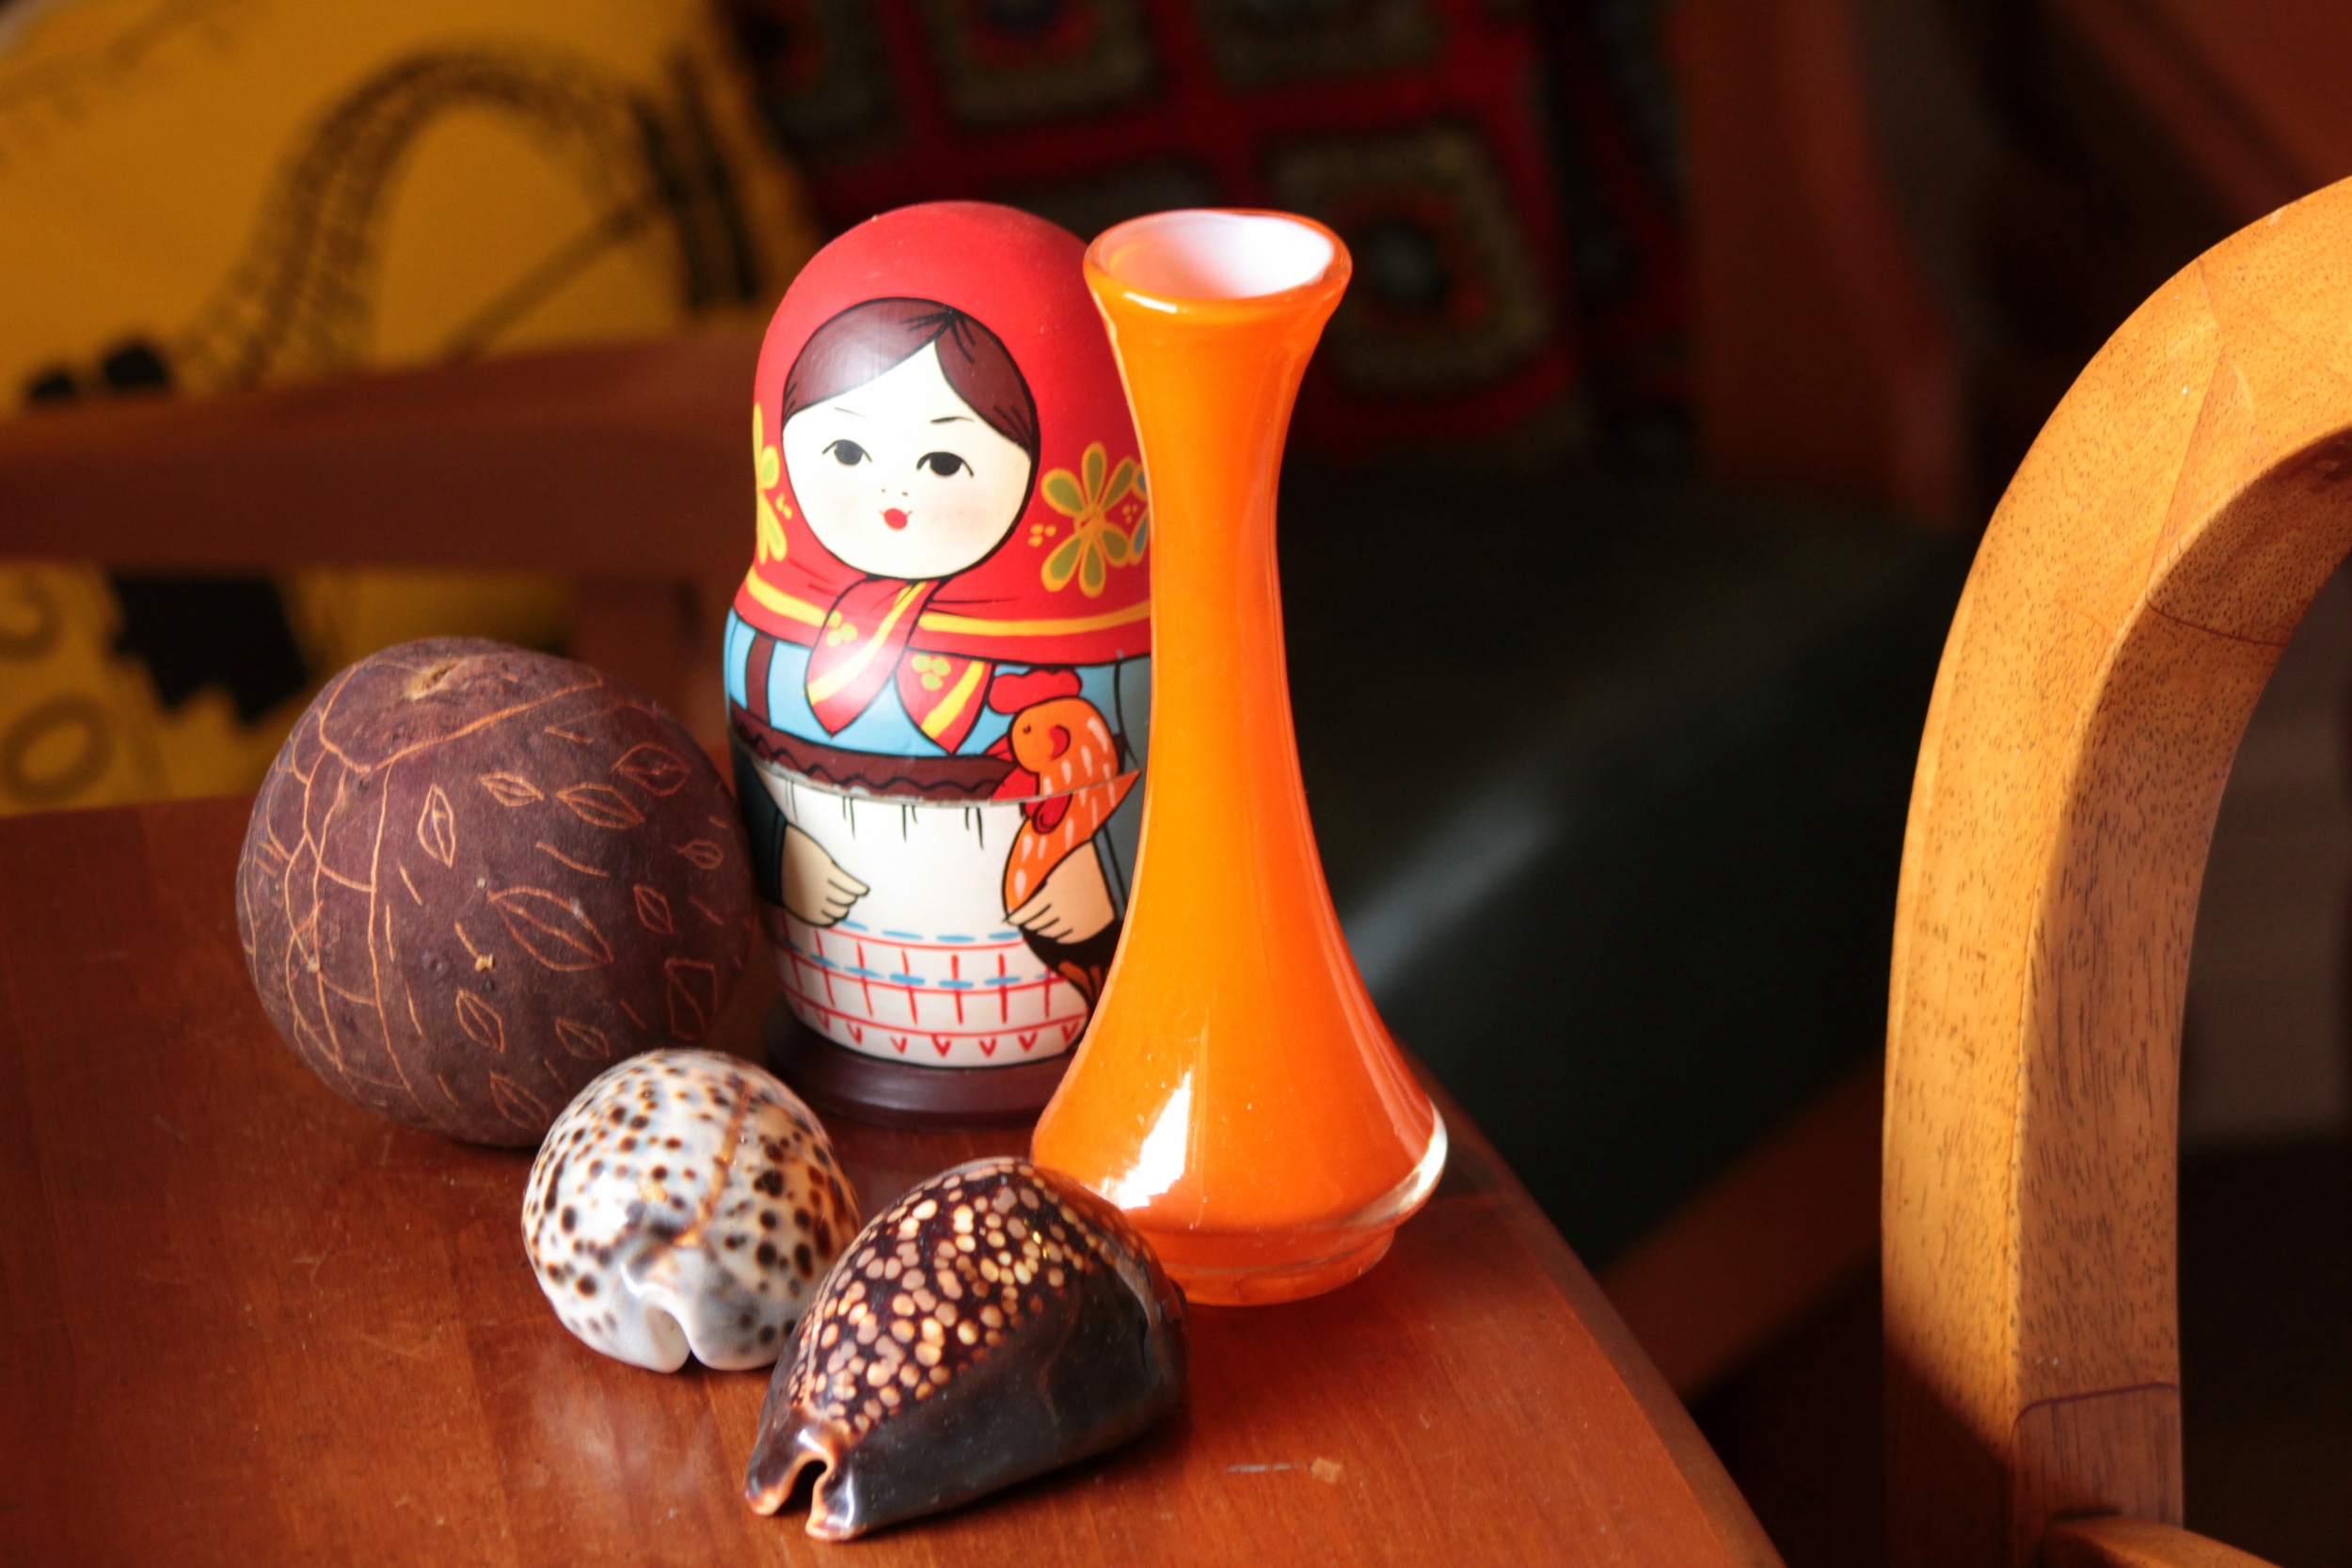 Dolls from St Petersburg, boab seed from Kunnunurra and shells from Vanuatu.  Furniture a mix of inheritance and ebay.